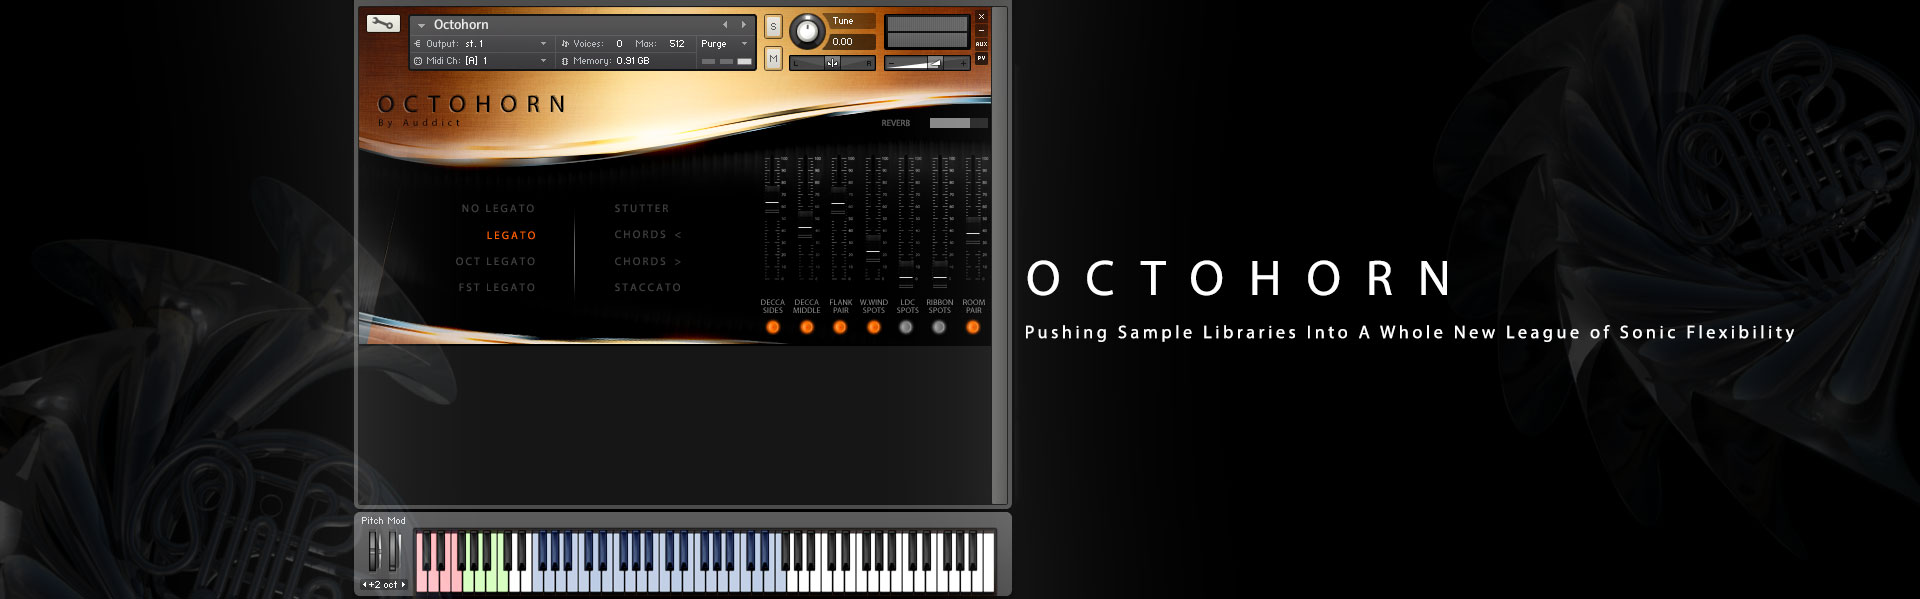 OCTOHORN - The Ultimate Sonically Mouldable French Horn